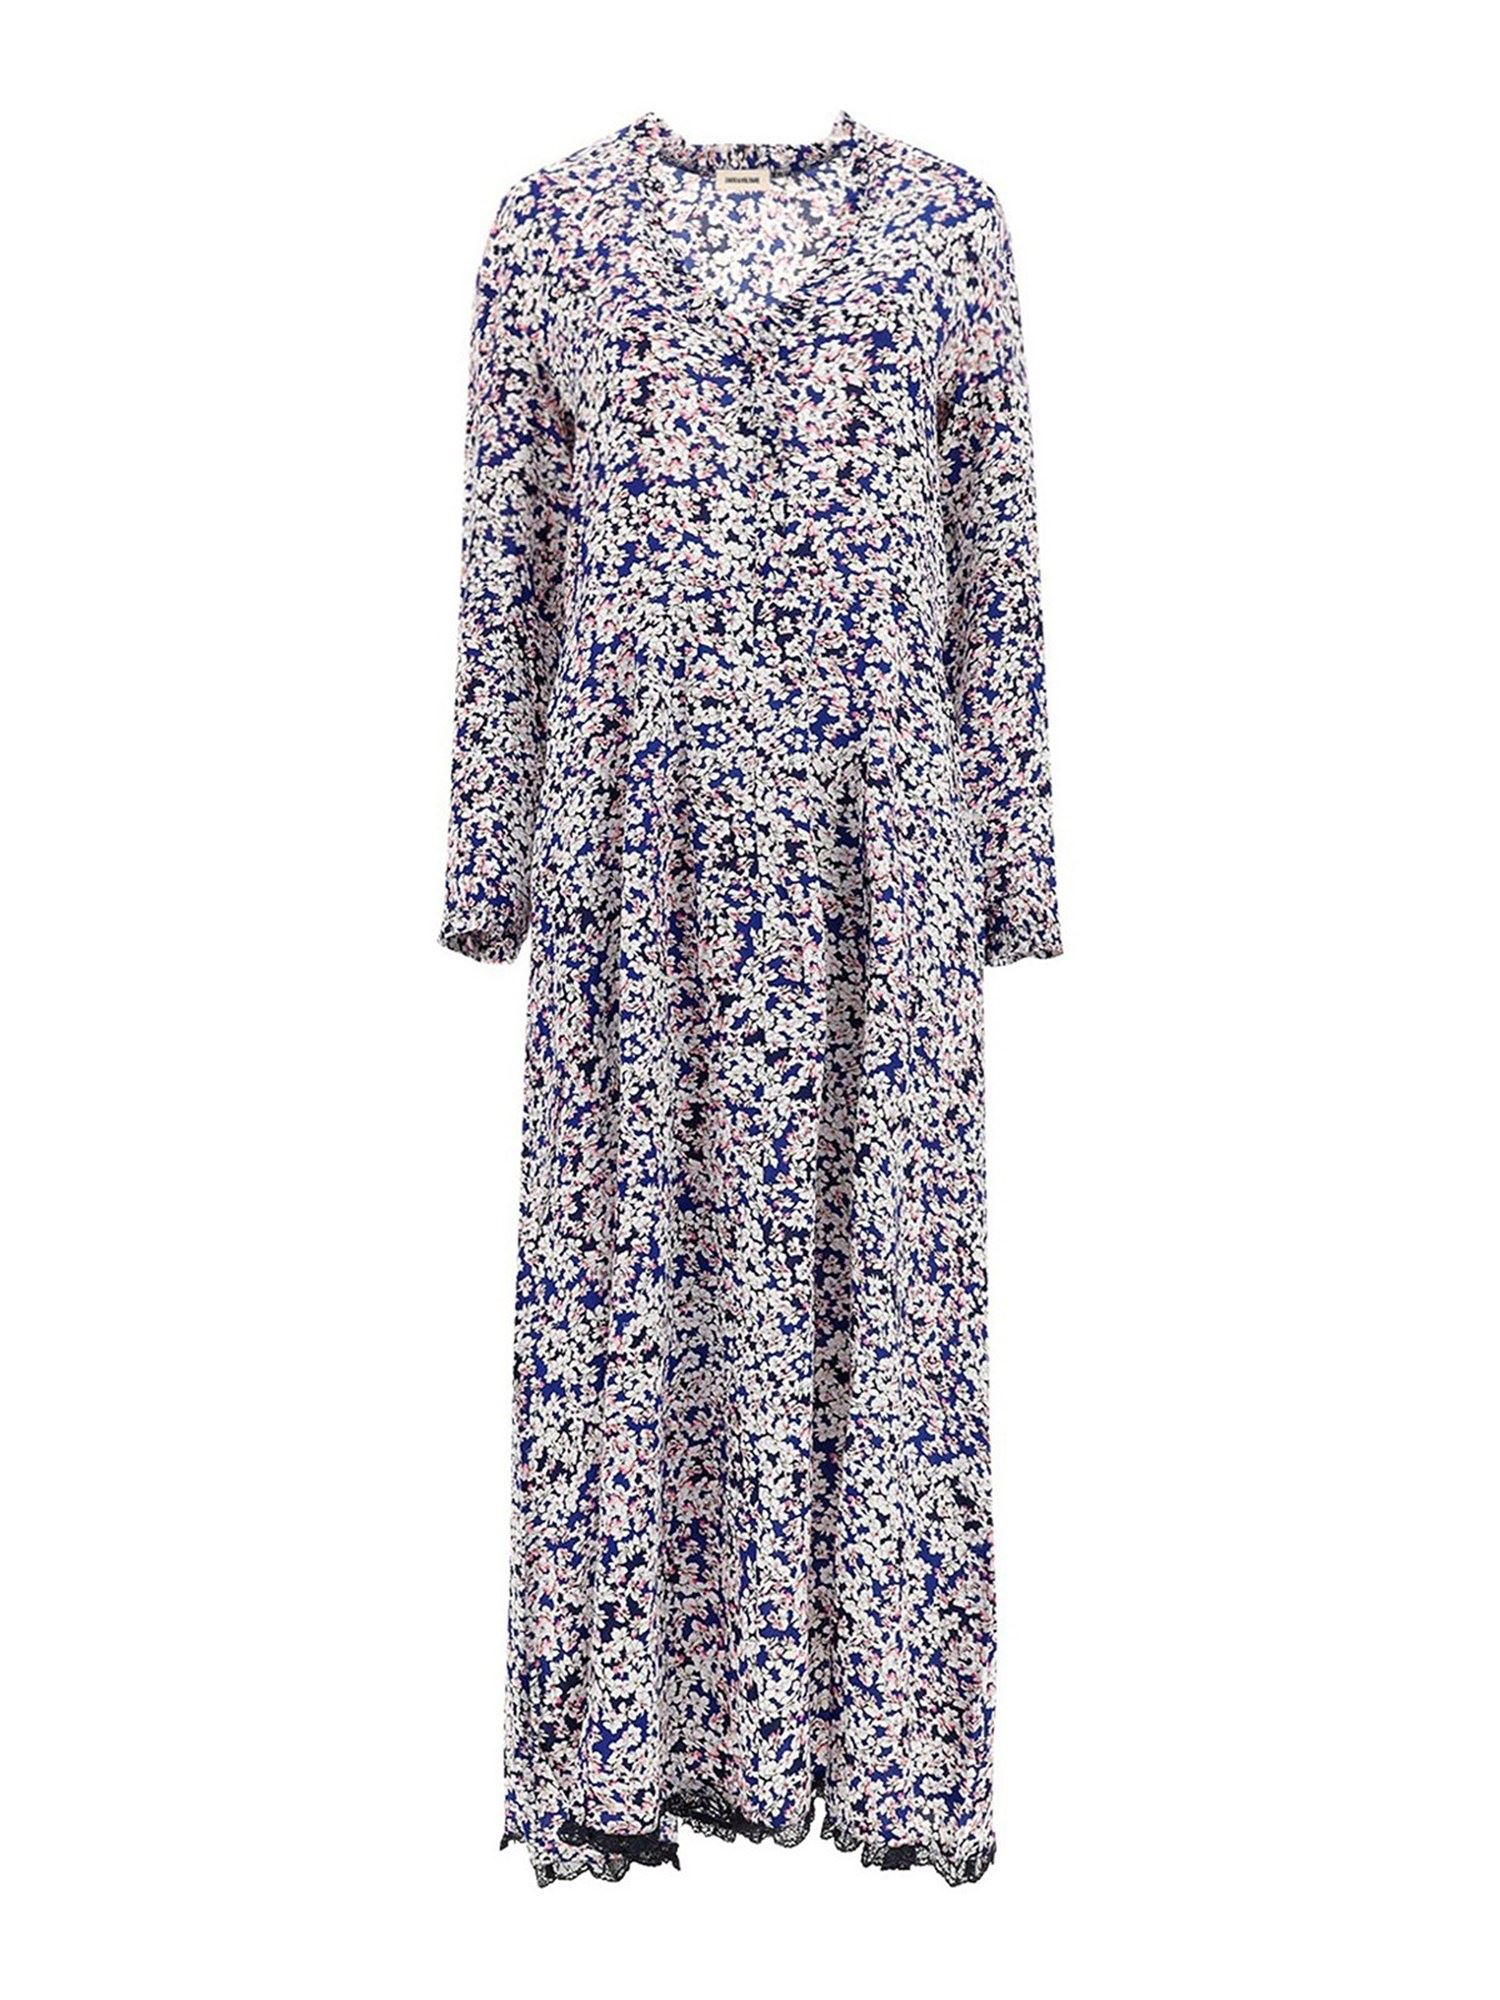 Zadig & Voltaire FLORAL PATTERNED MAXI DRESS IN BLUE